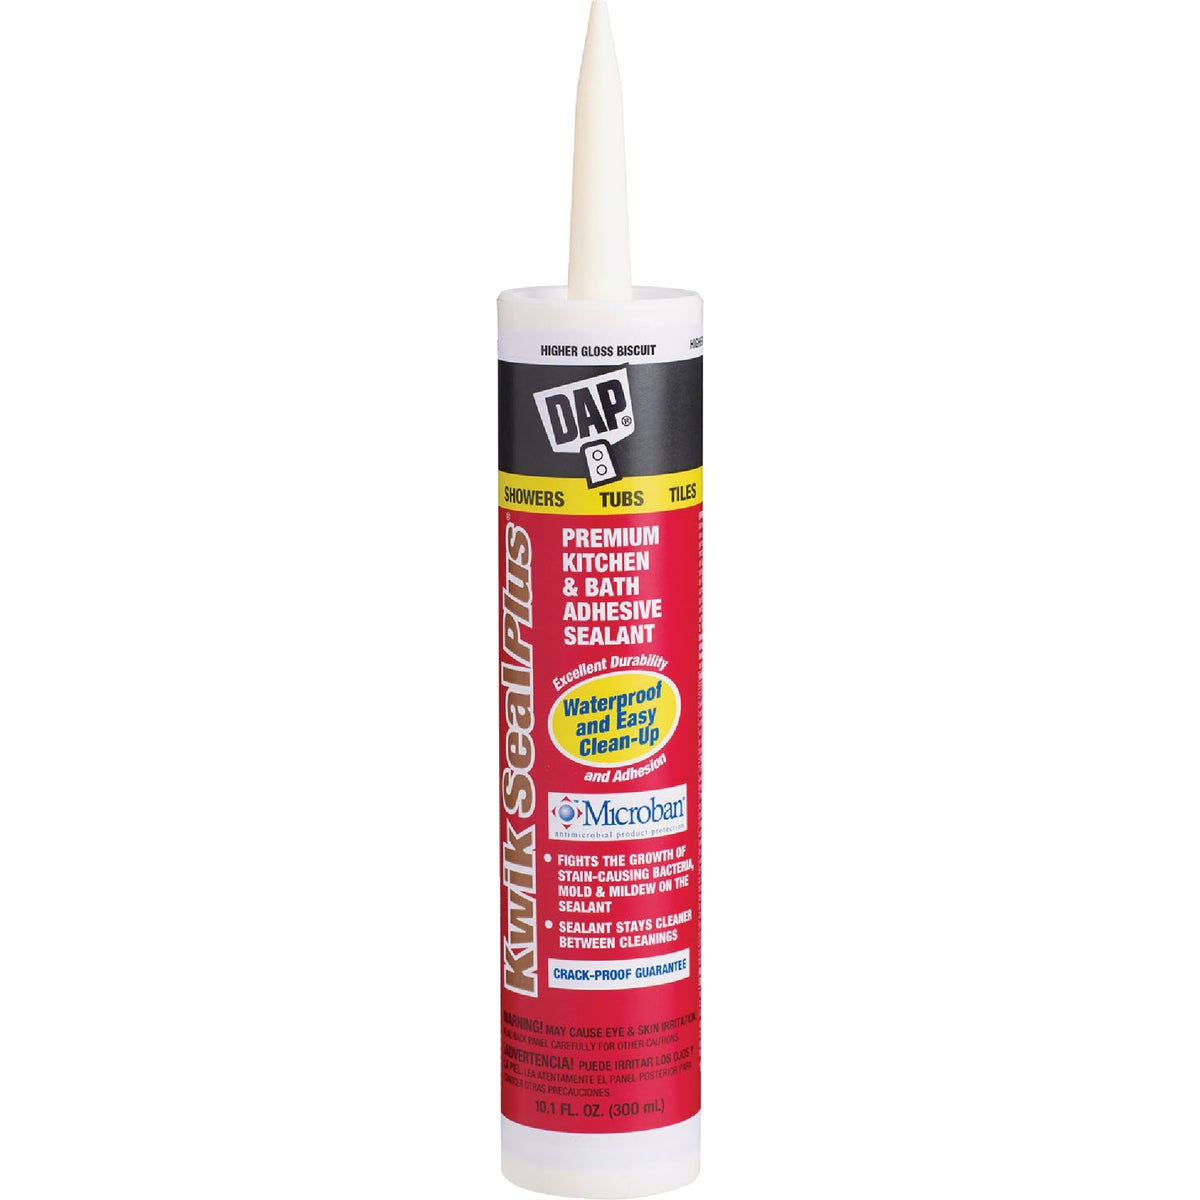 BISQ KWK-SEAL PLUS CAULK - 18519 by Dap Inc